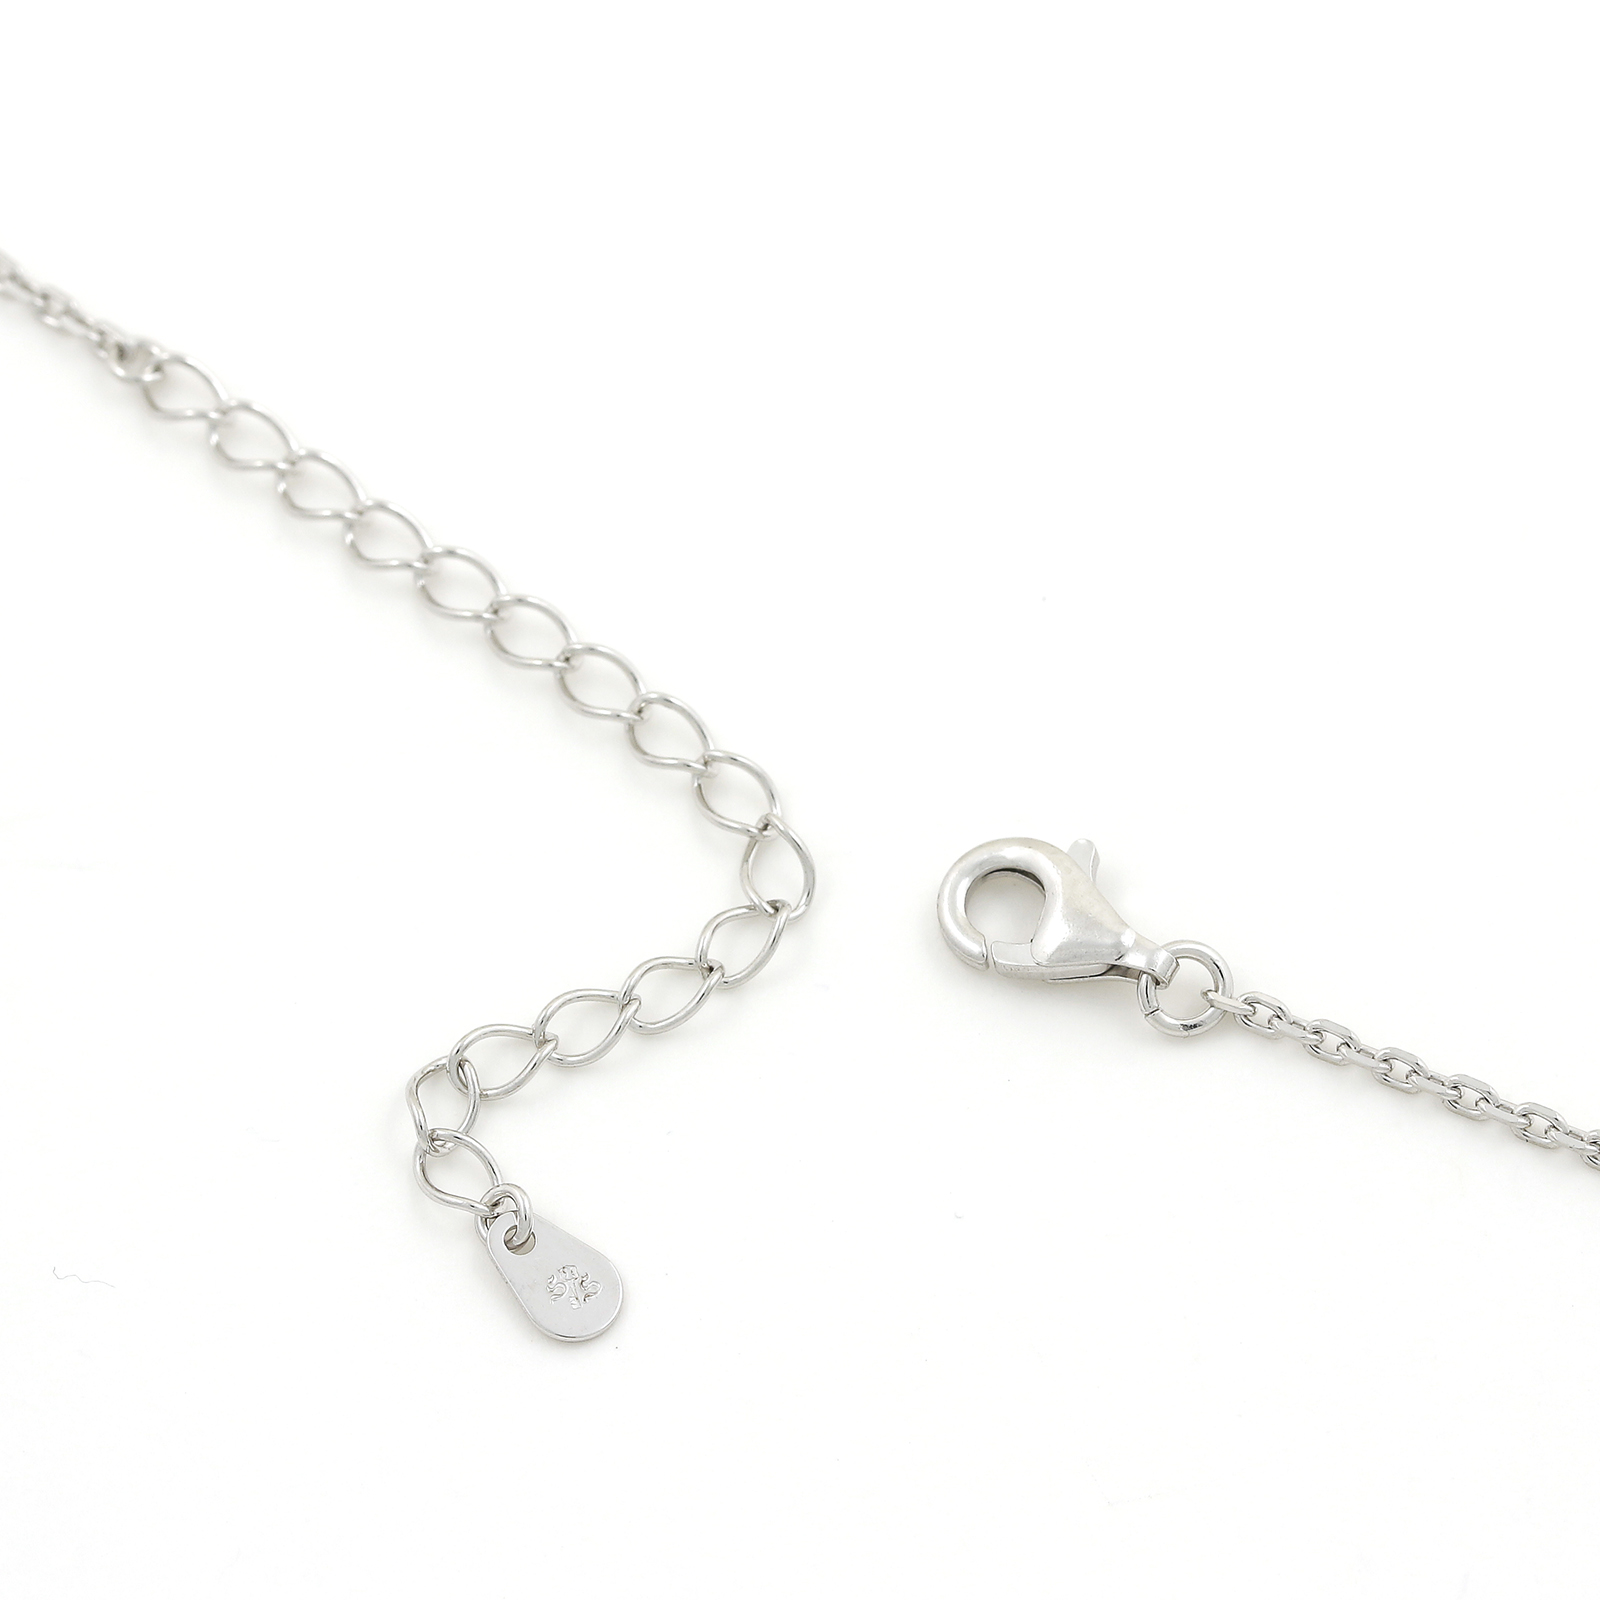 Double Cross Necklace - Silver